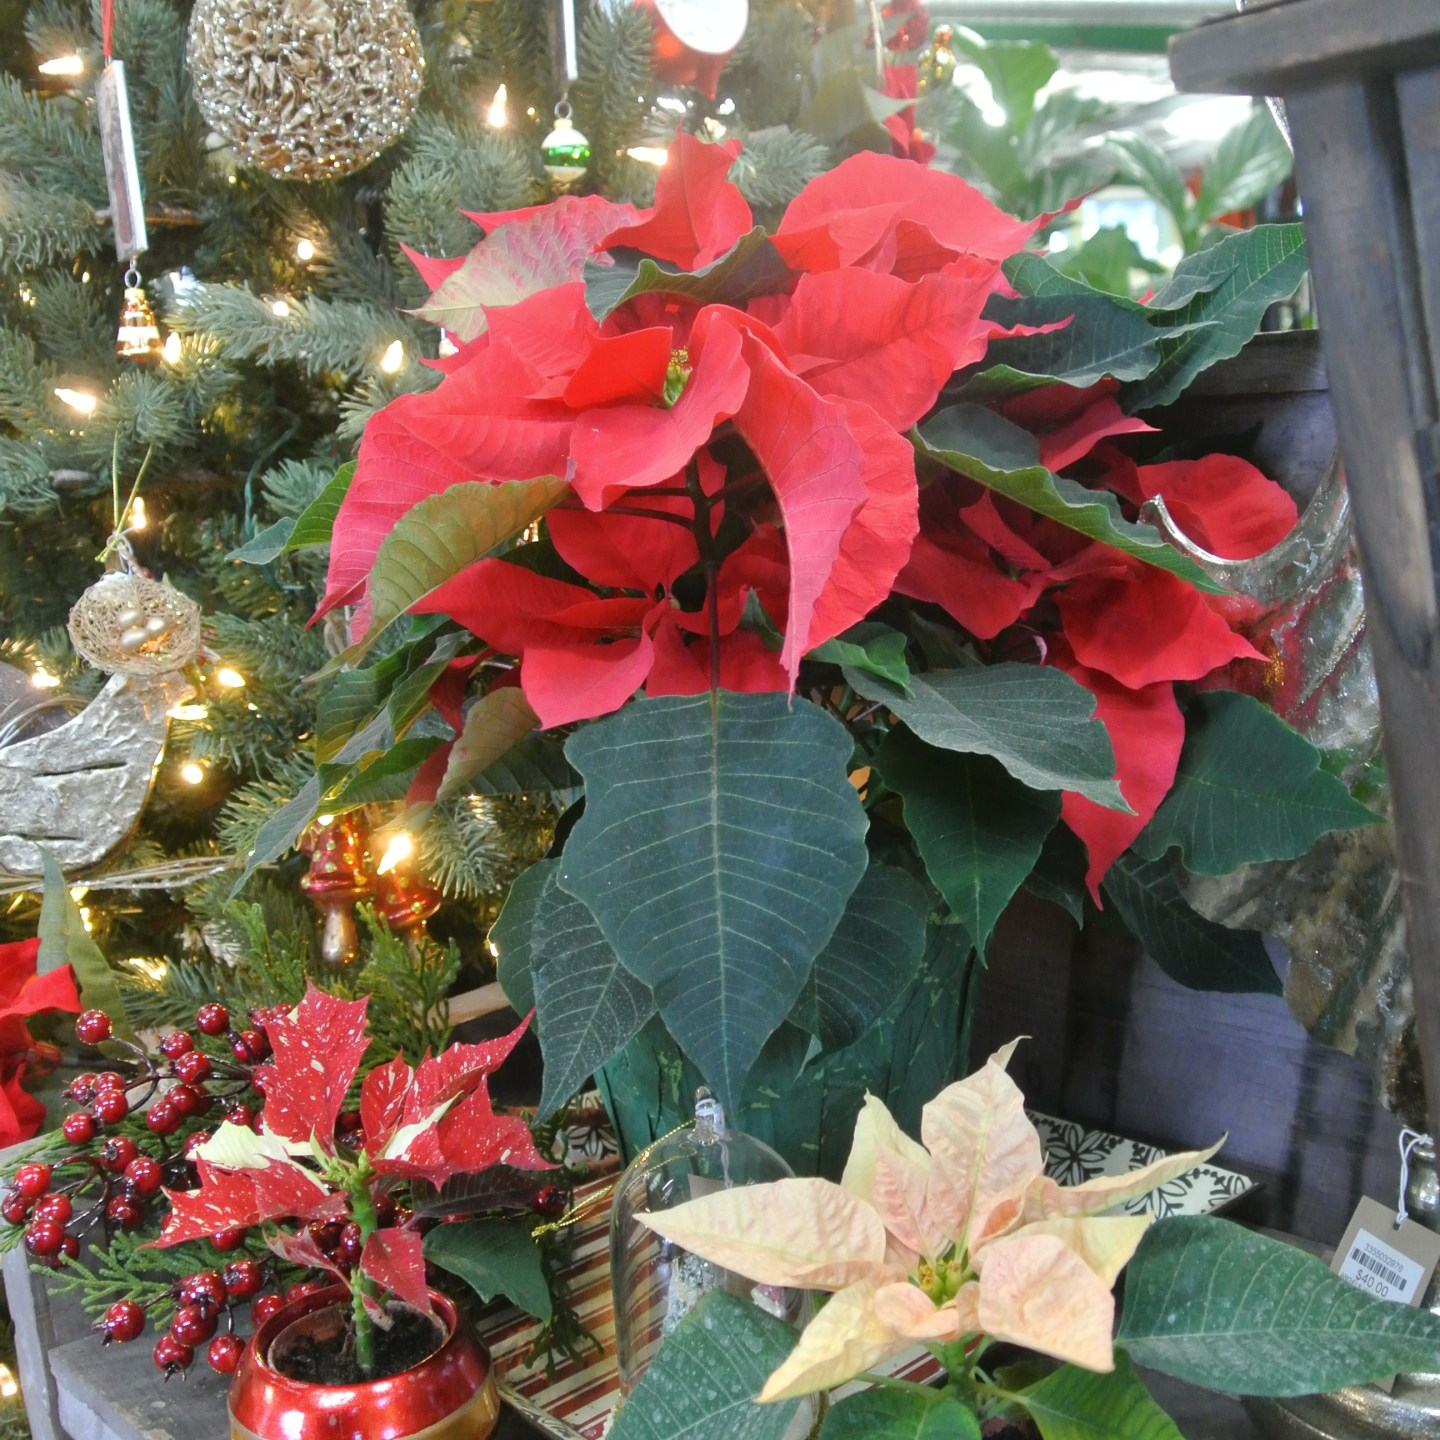 Selecting and Caring for Holiday Houseplants